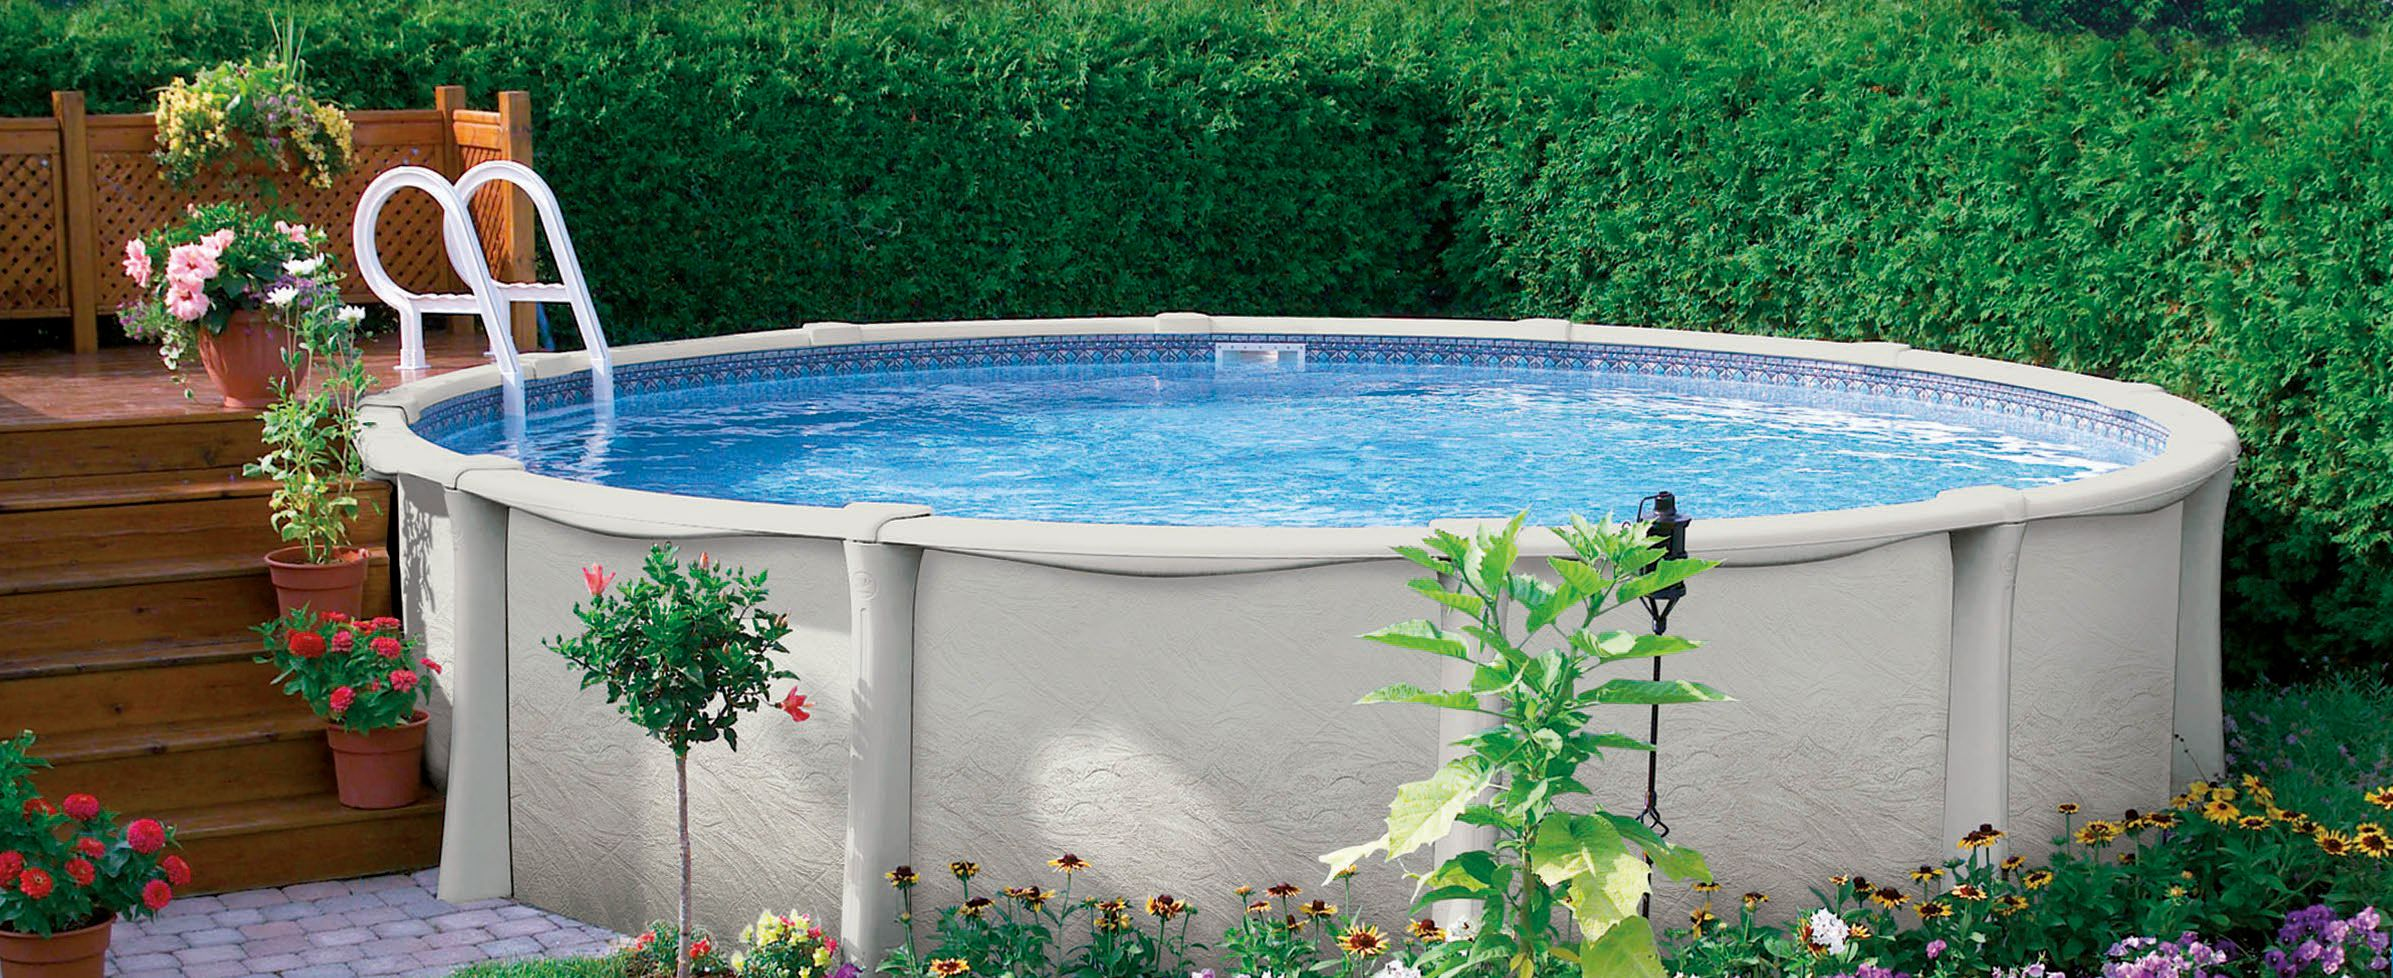 Piscine hors sol piscine for Piscine demontable hors sol